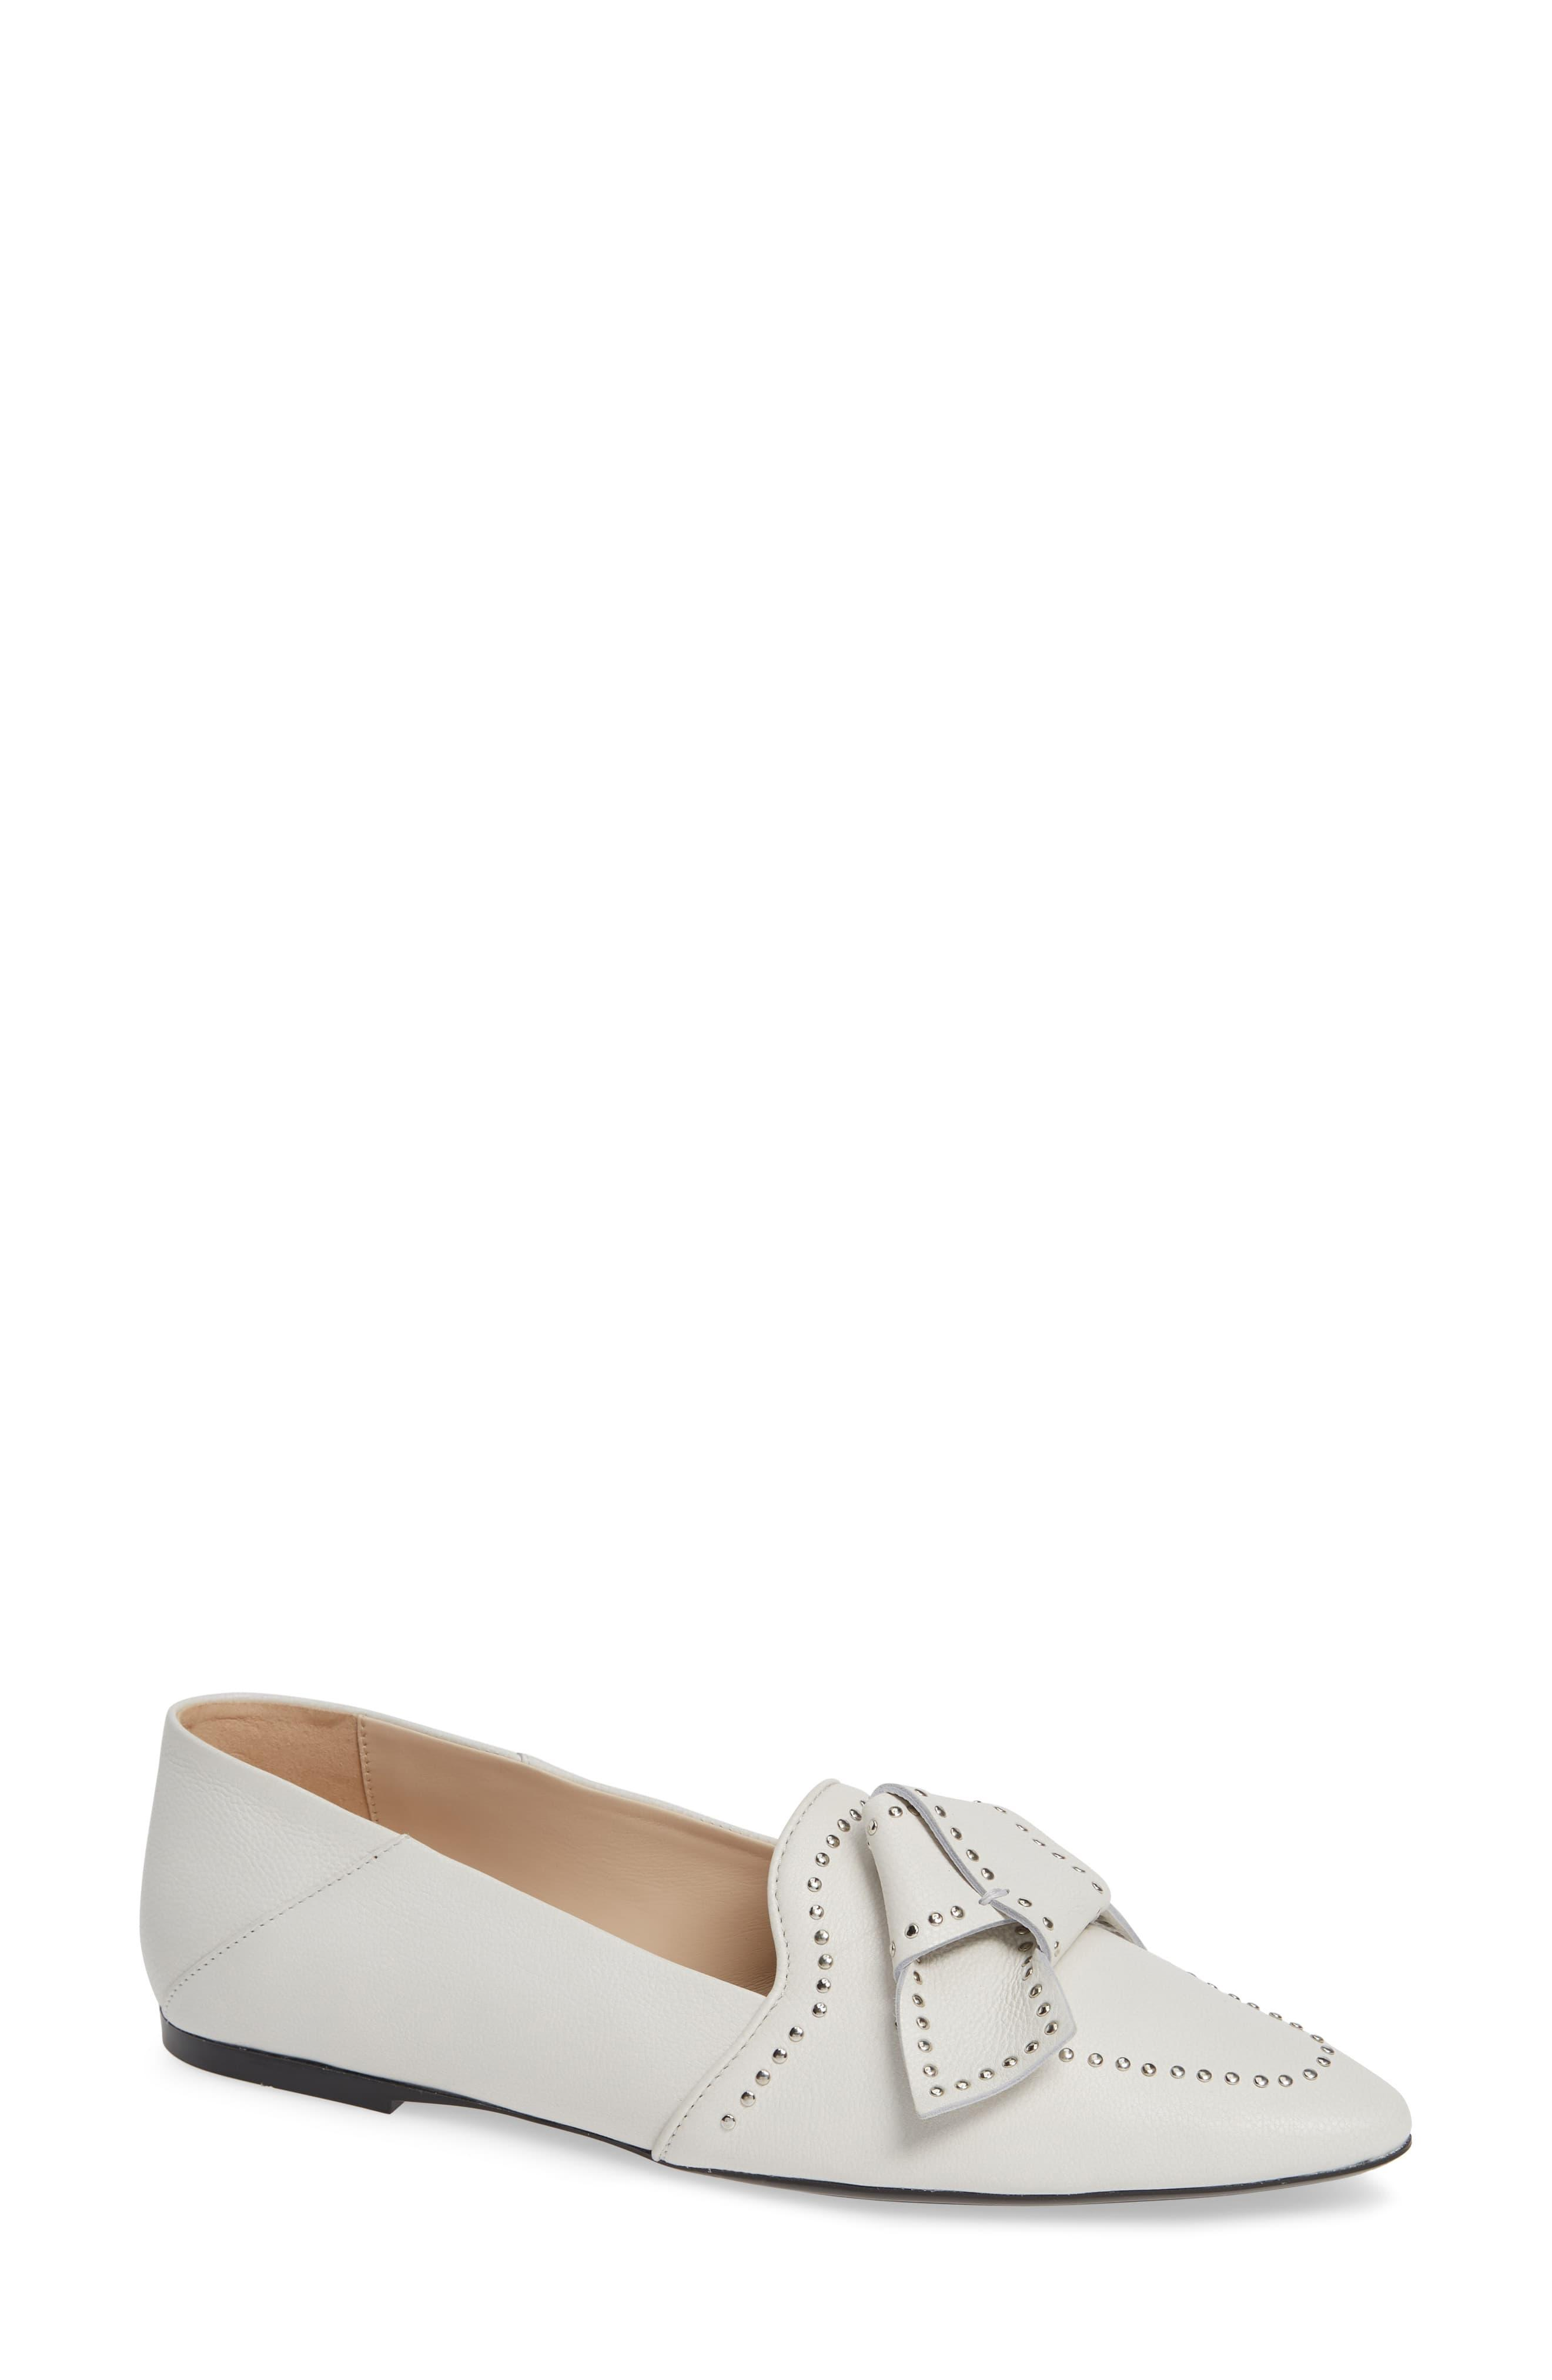 Tod's Leather Studded Bow Loafer in